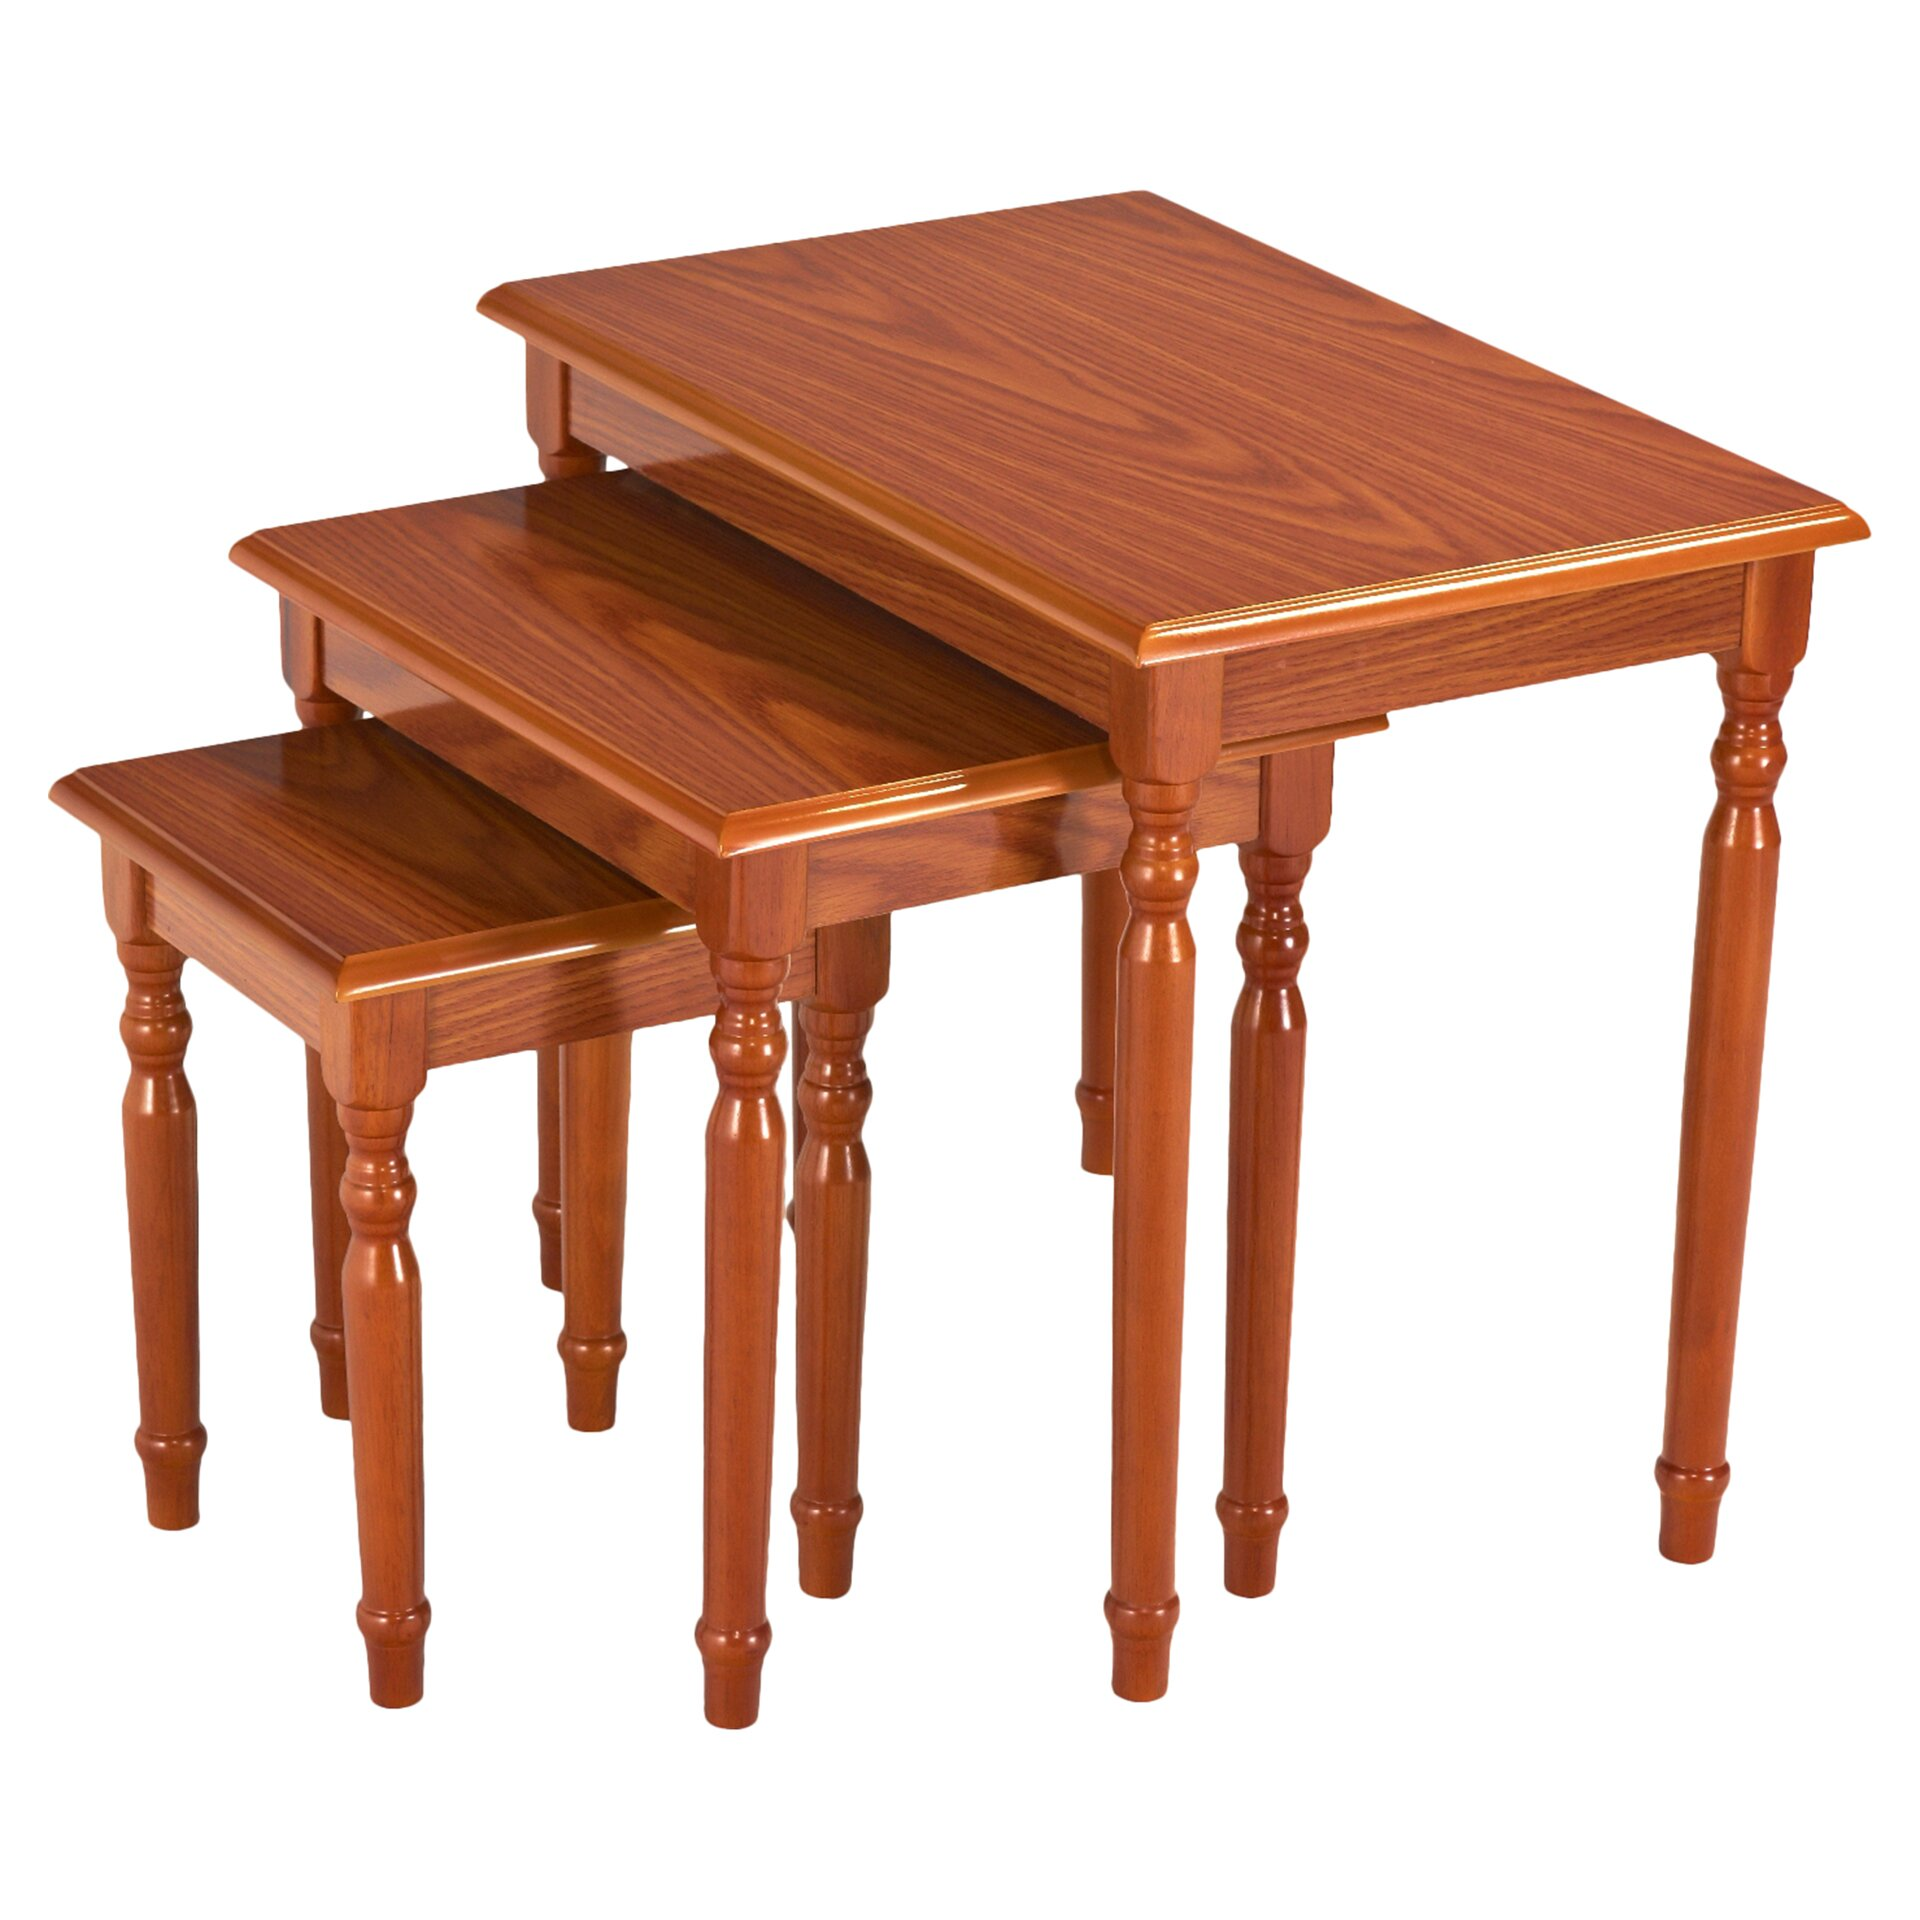 Charlton Home Raynsford 3 Piece Nesting Tables & Reviews Wayfair. Full resolution  photo, nominally Width 1920 Height 1920 pixels, photo with #471E09.